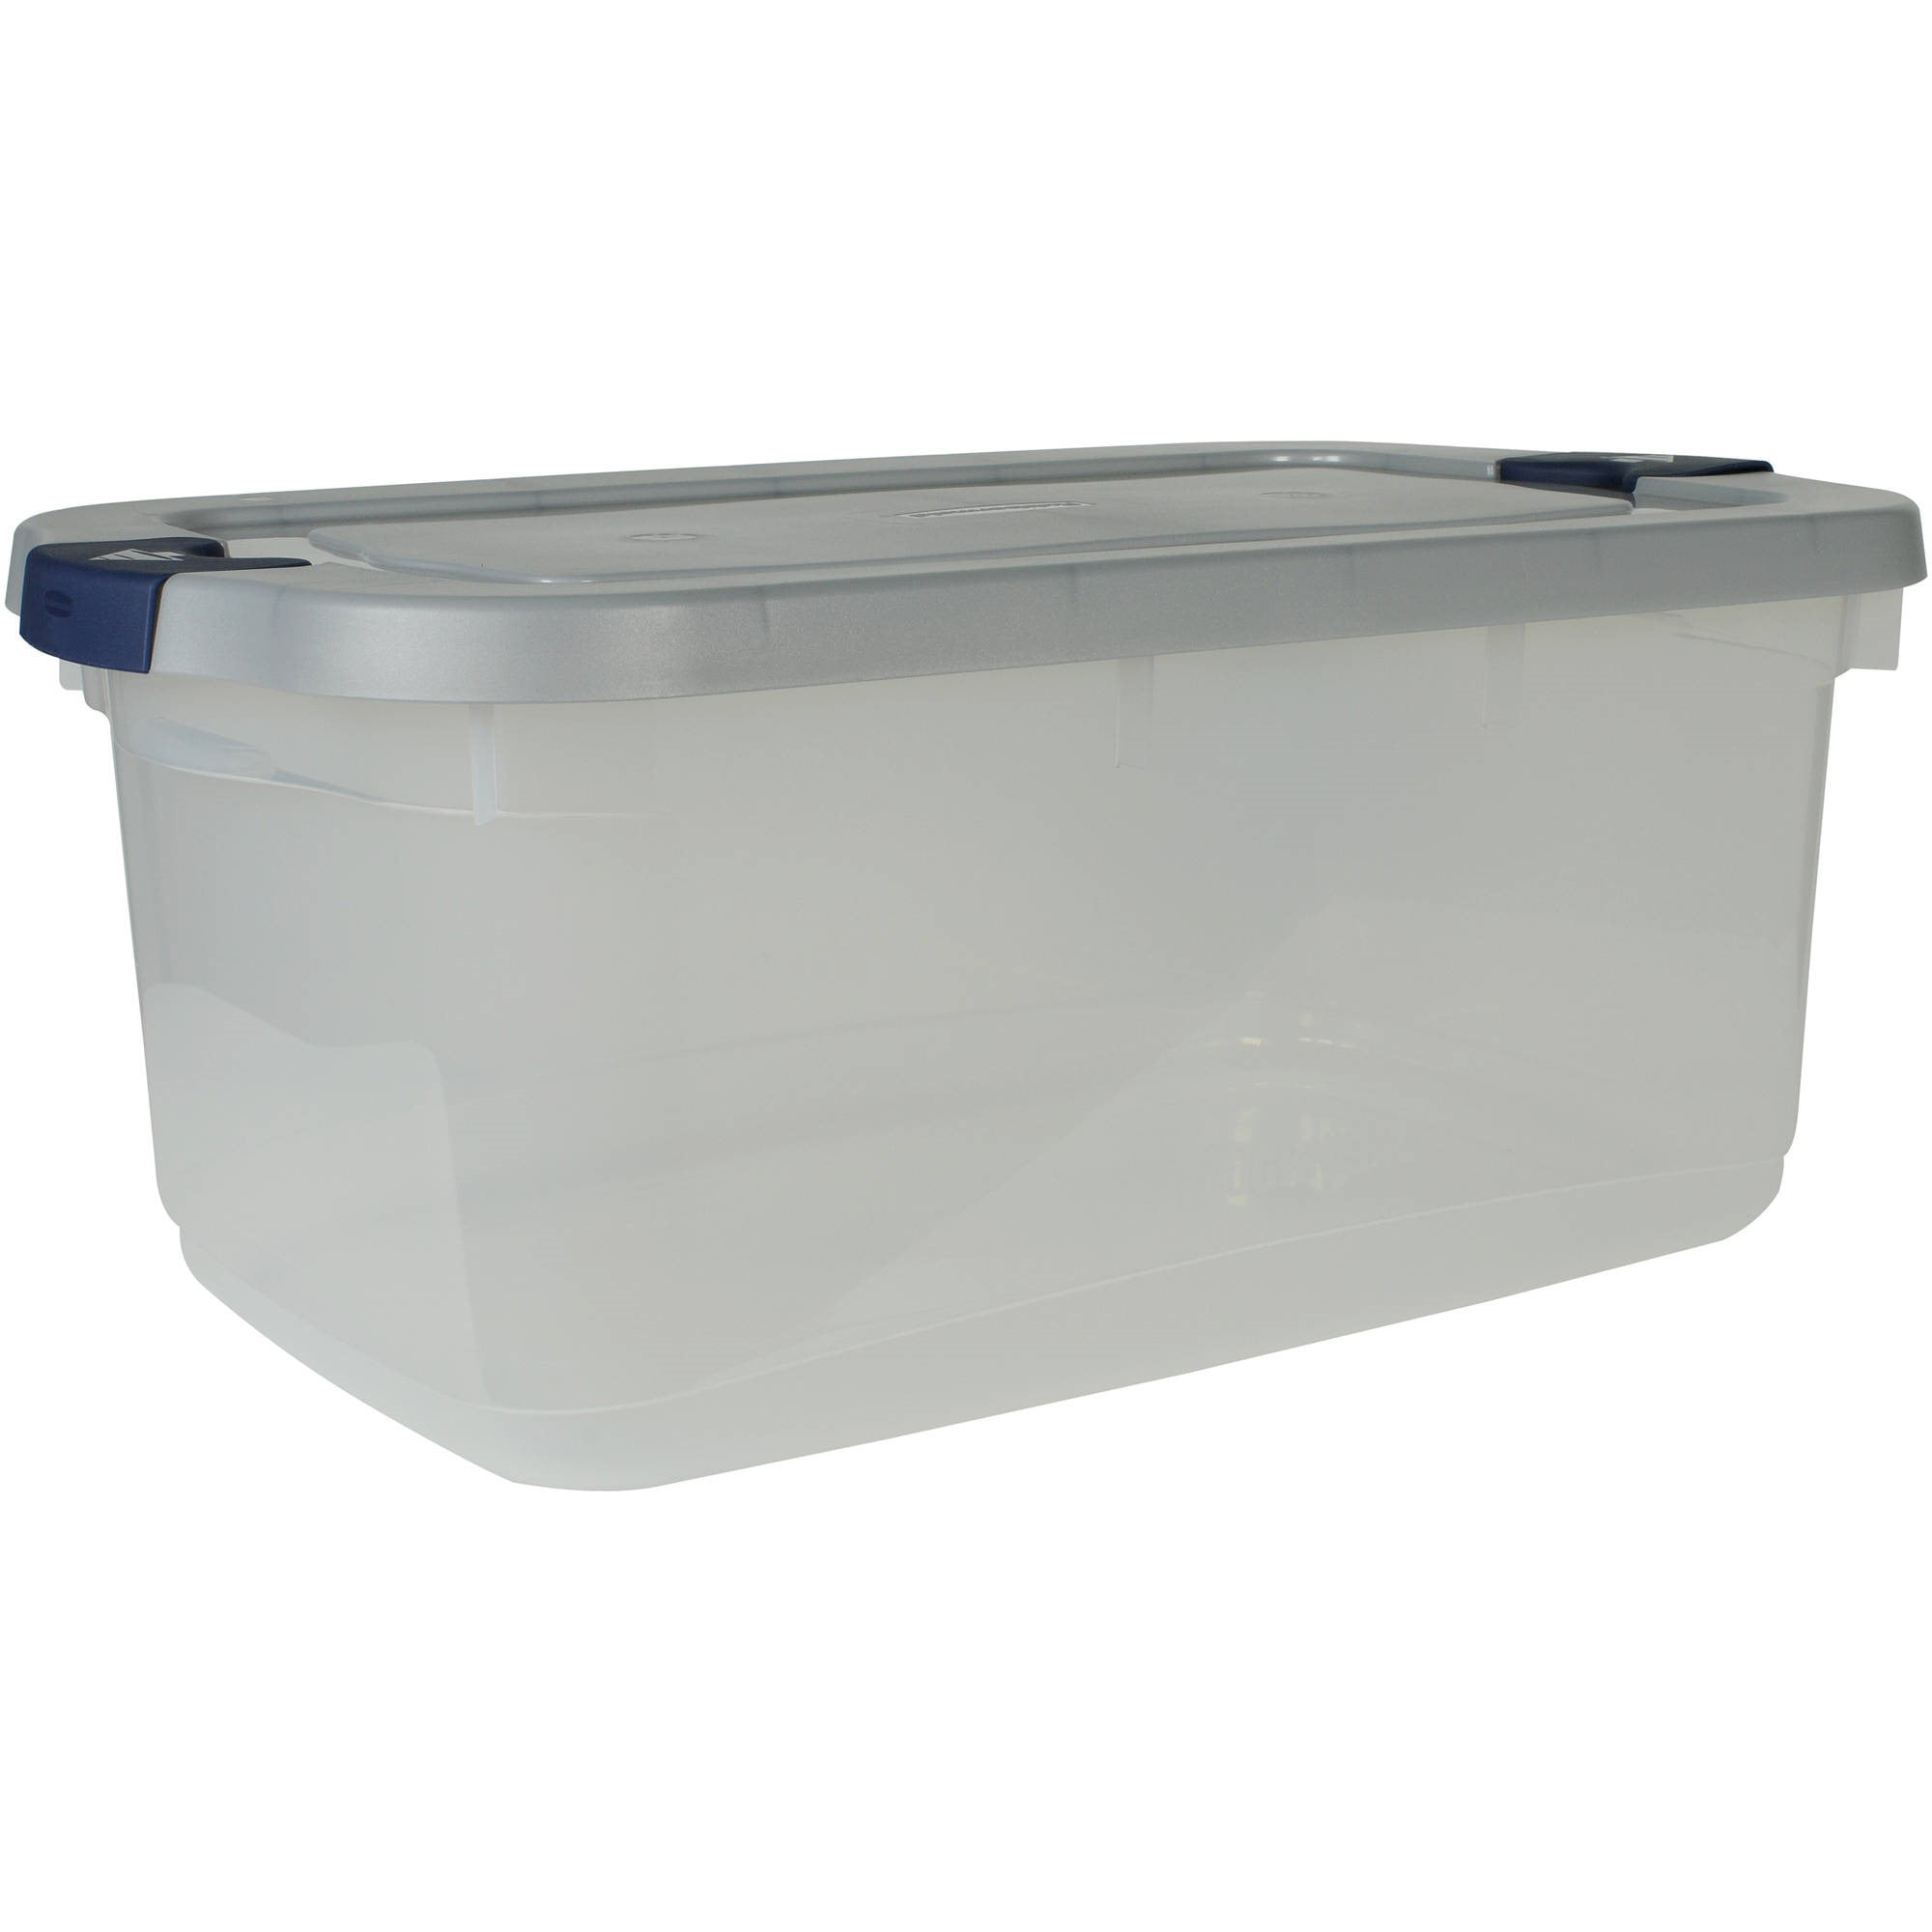 Rubbermaid Roughneck 50 Qt (125 Gal), Clear Storage Tote Bins,